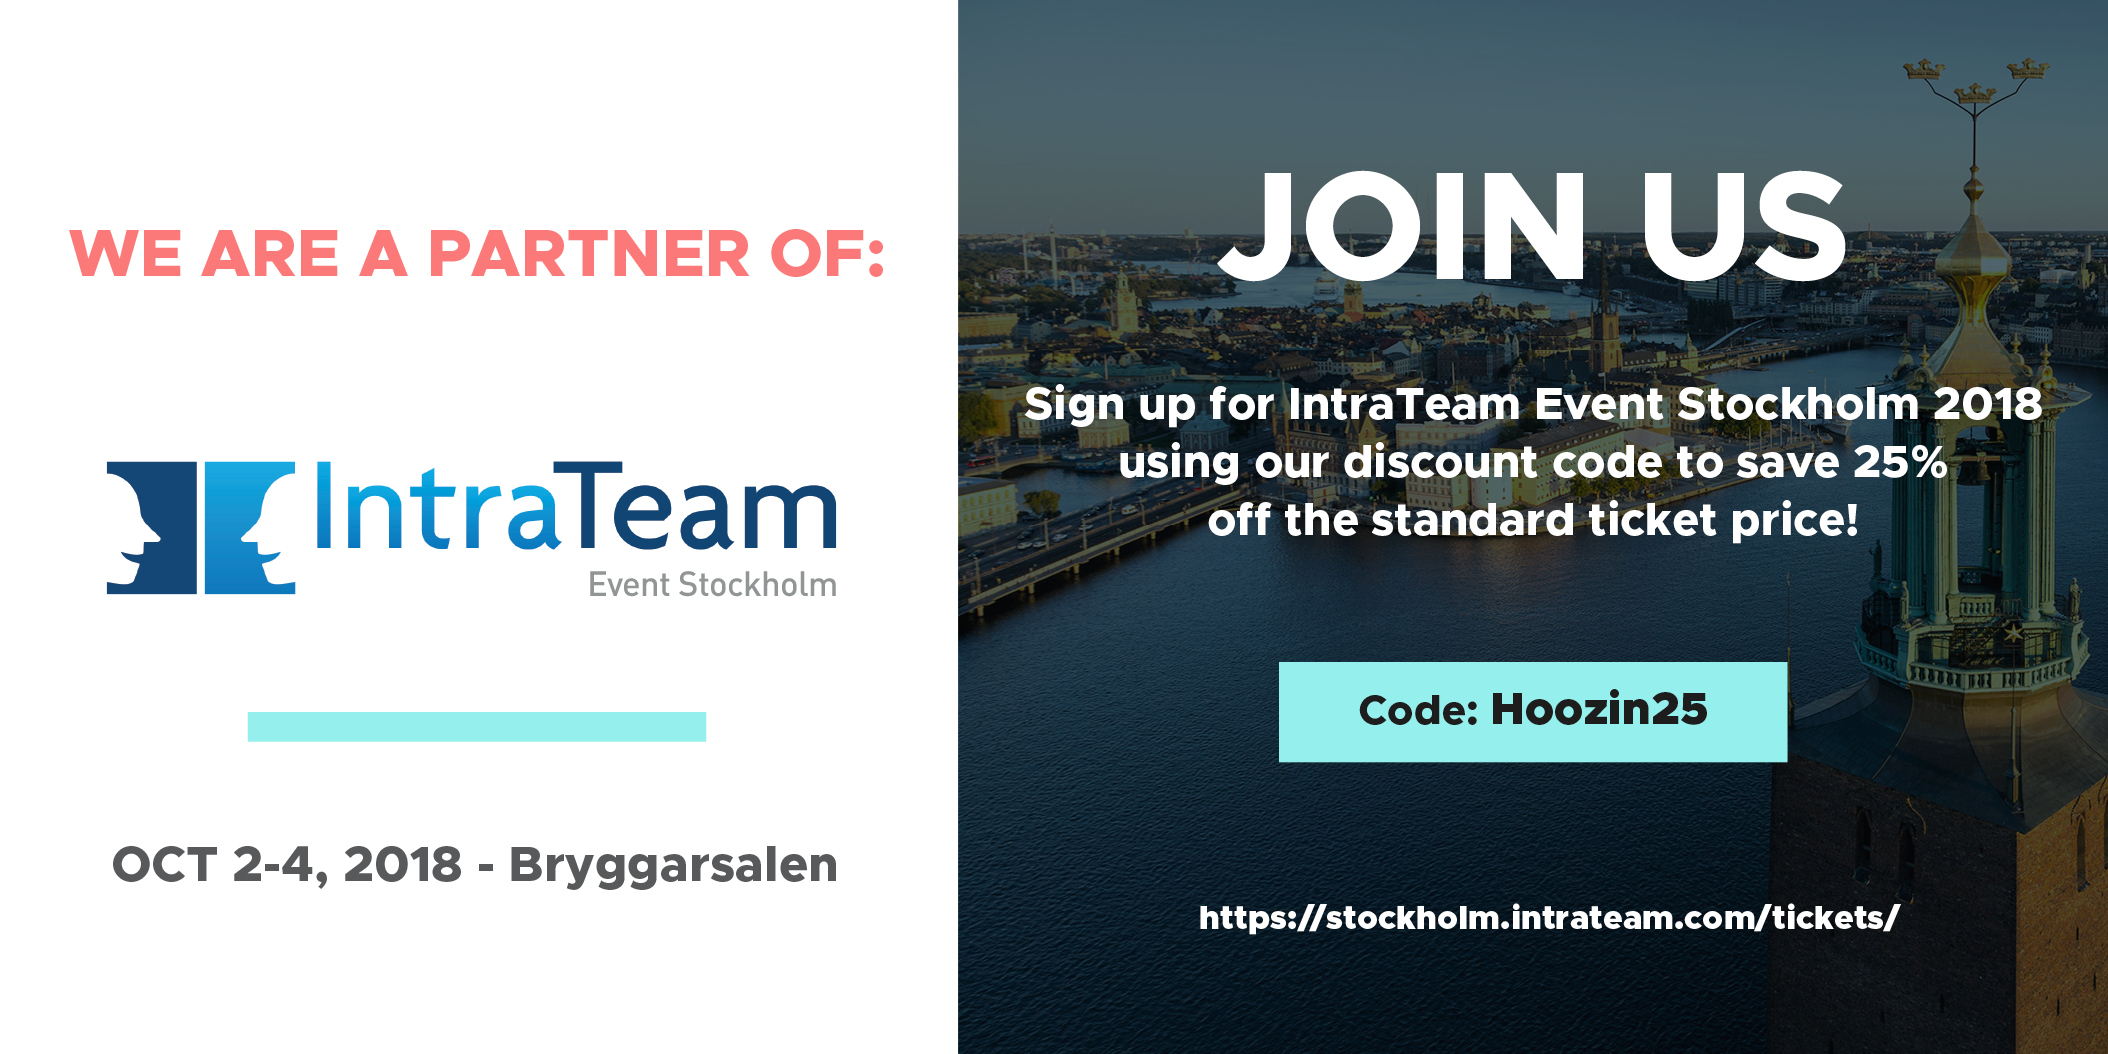 IntraTeam Event